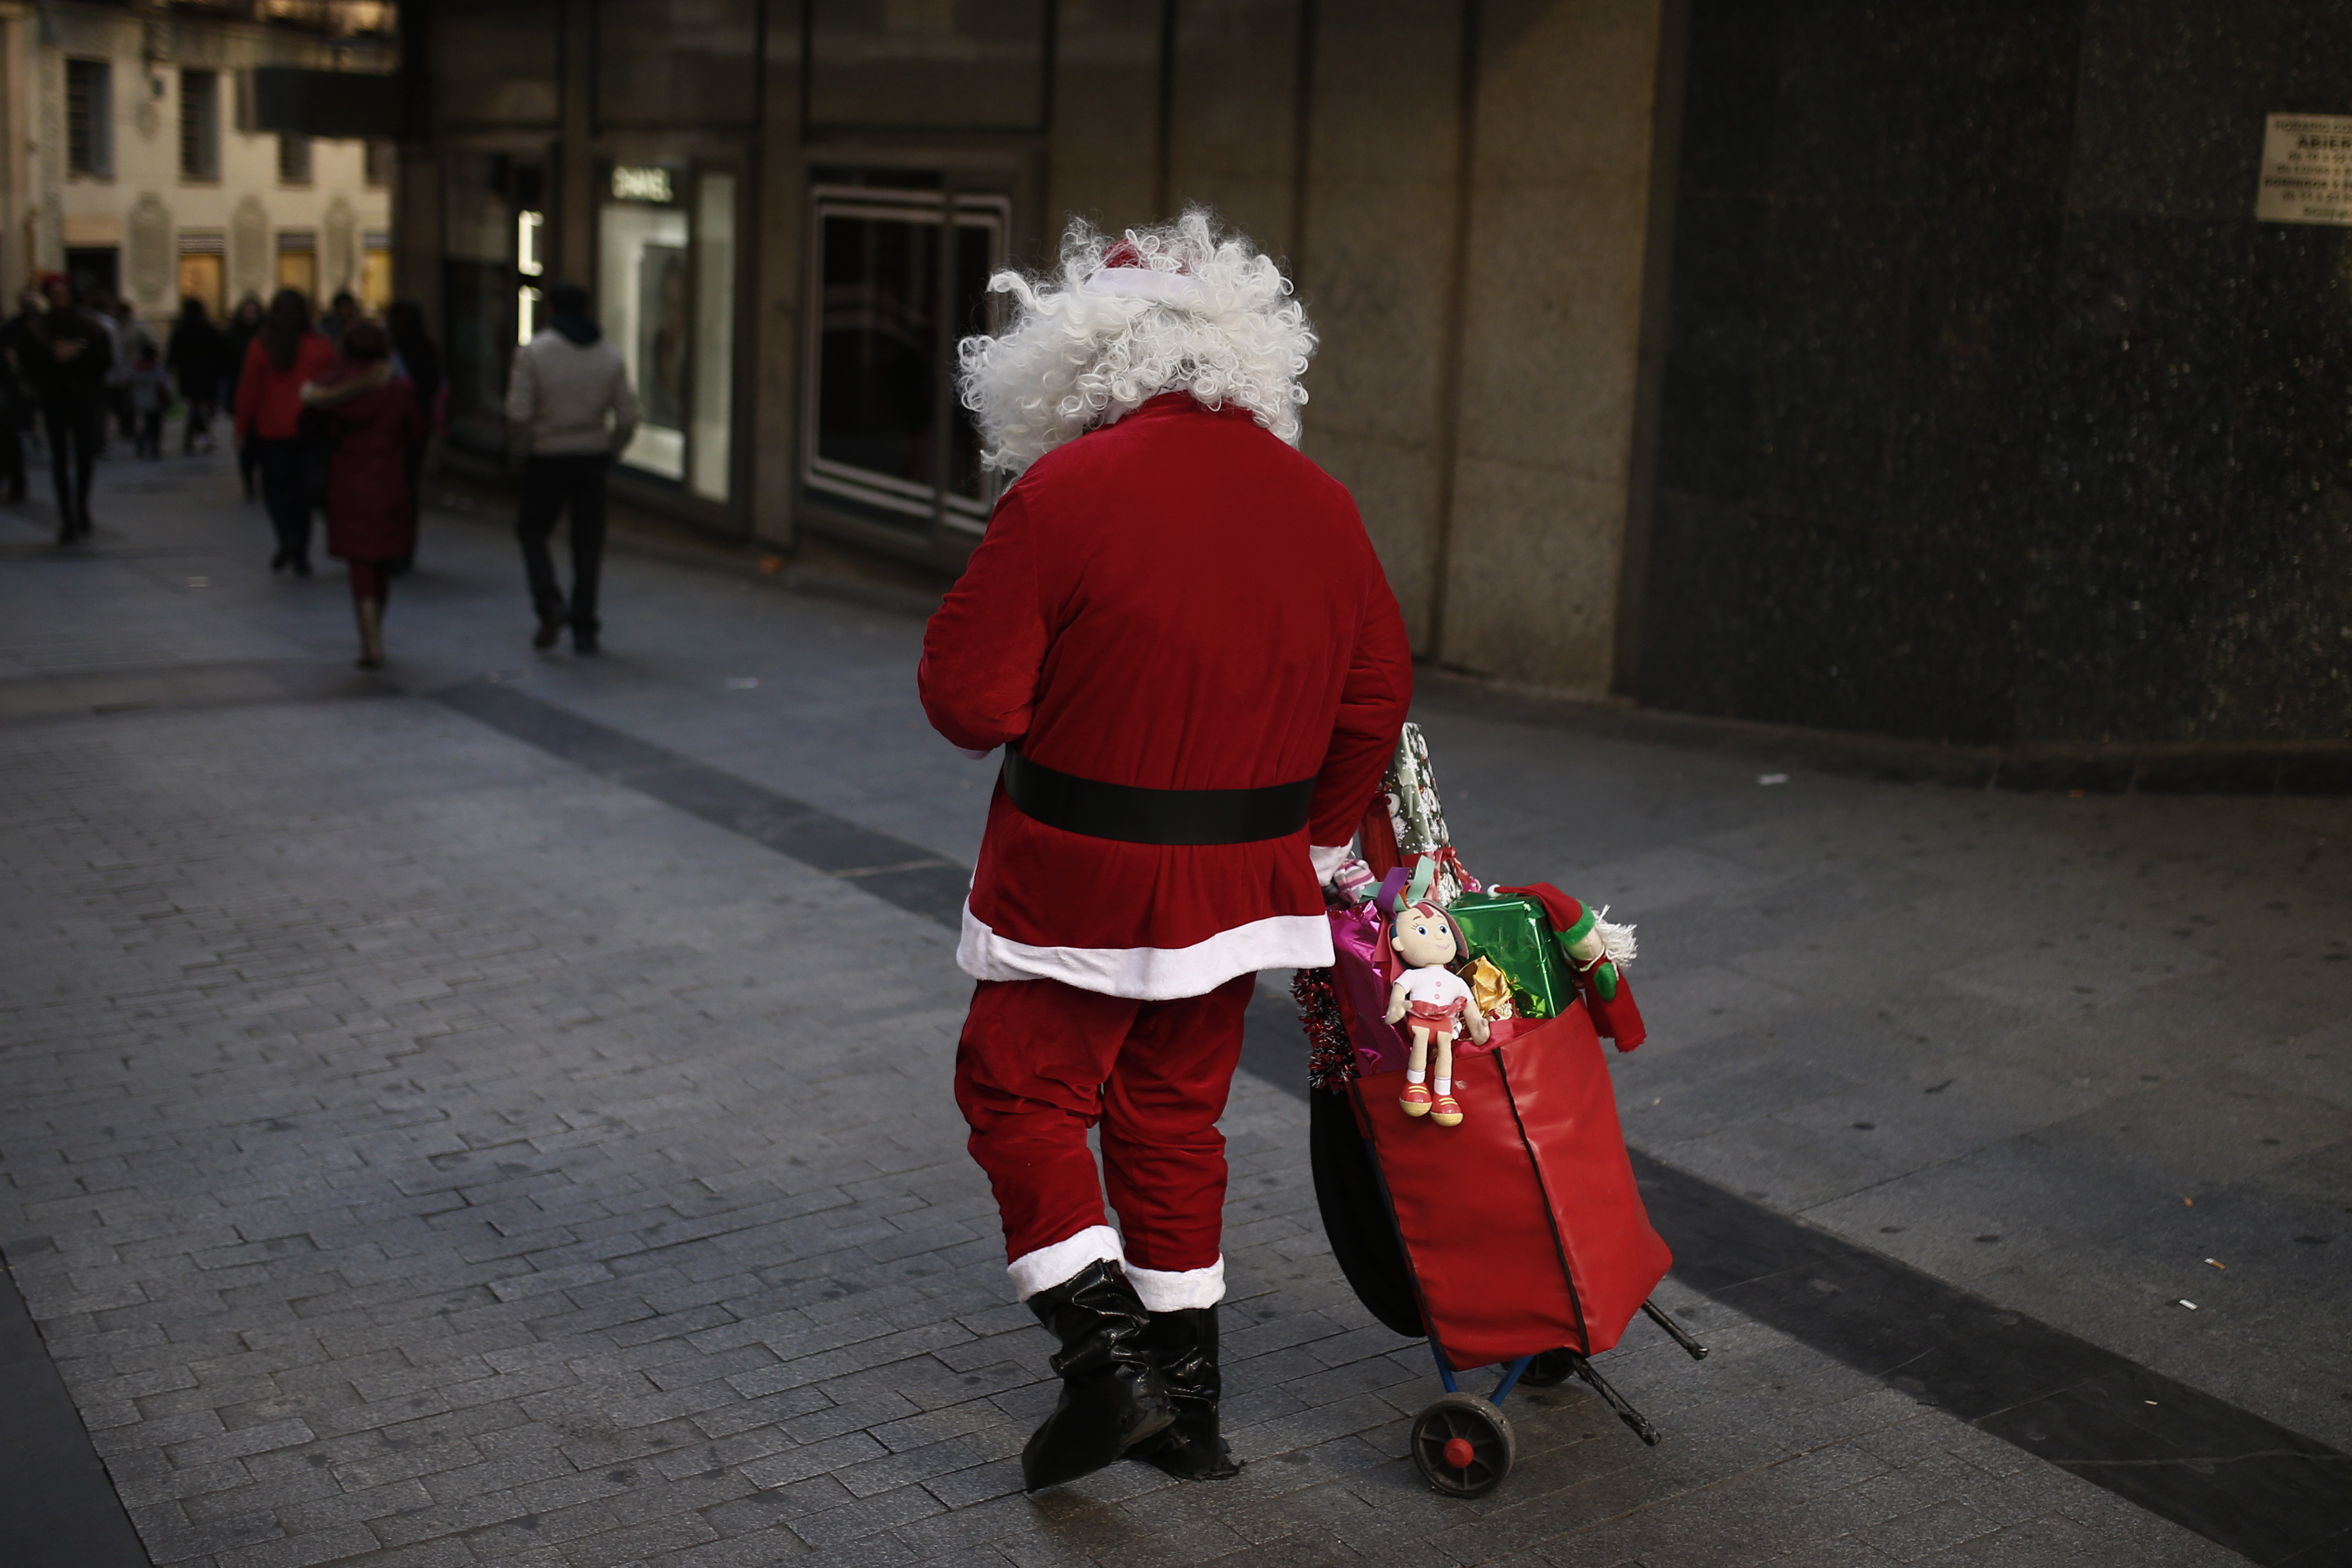 Greenpeace video warns that climate change is wrecking Santa's home